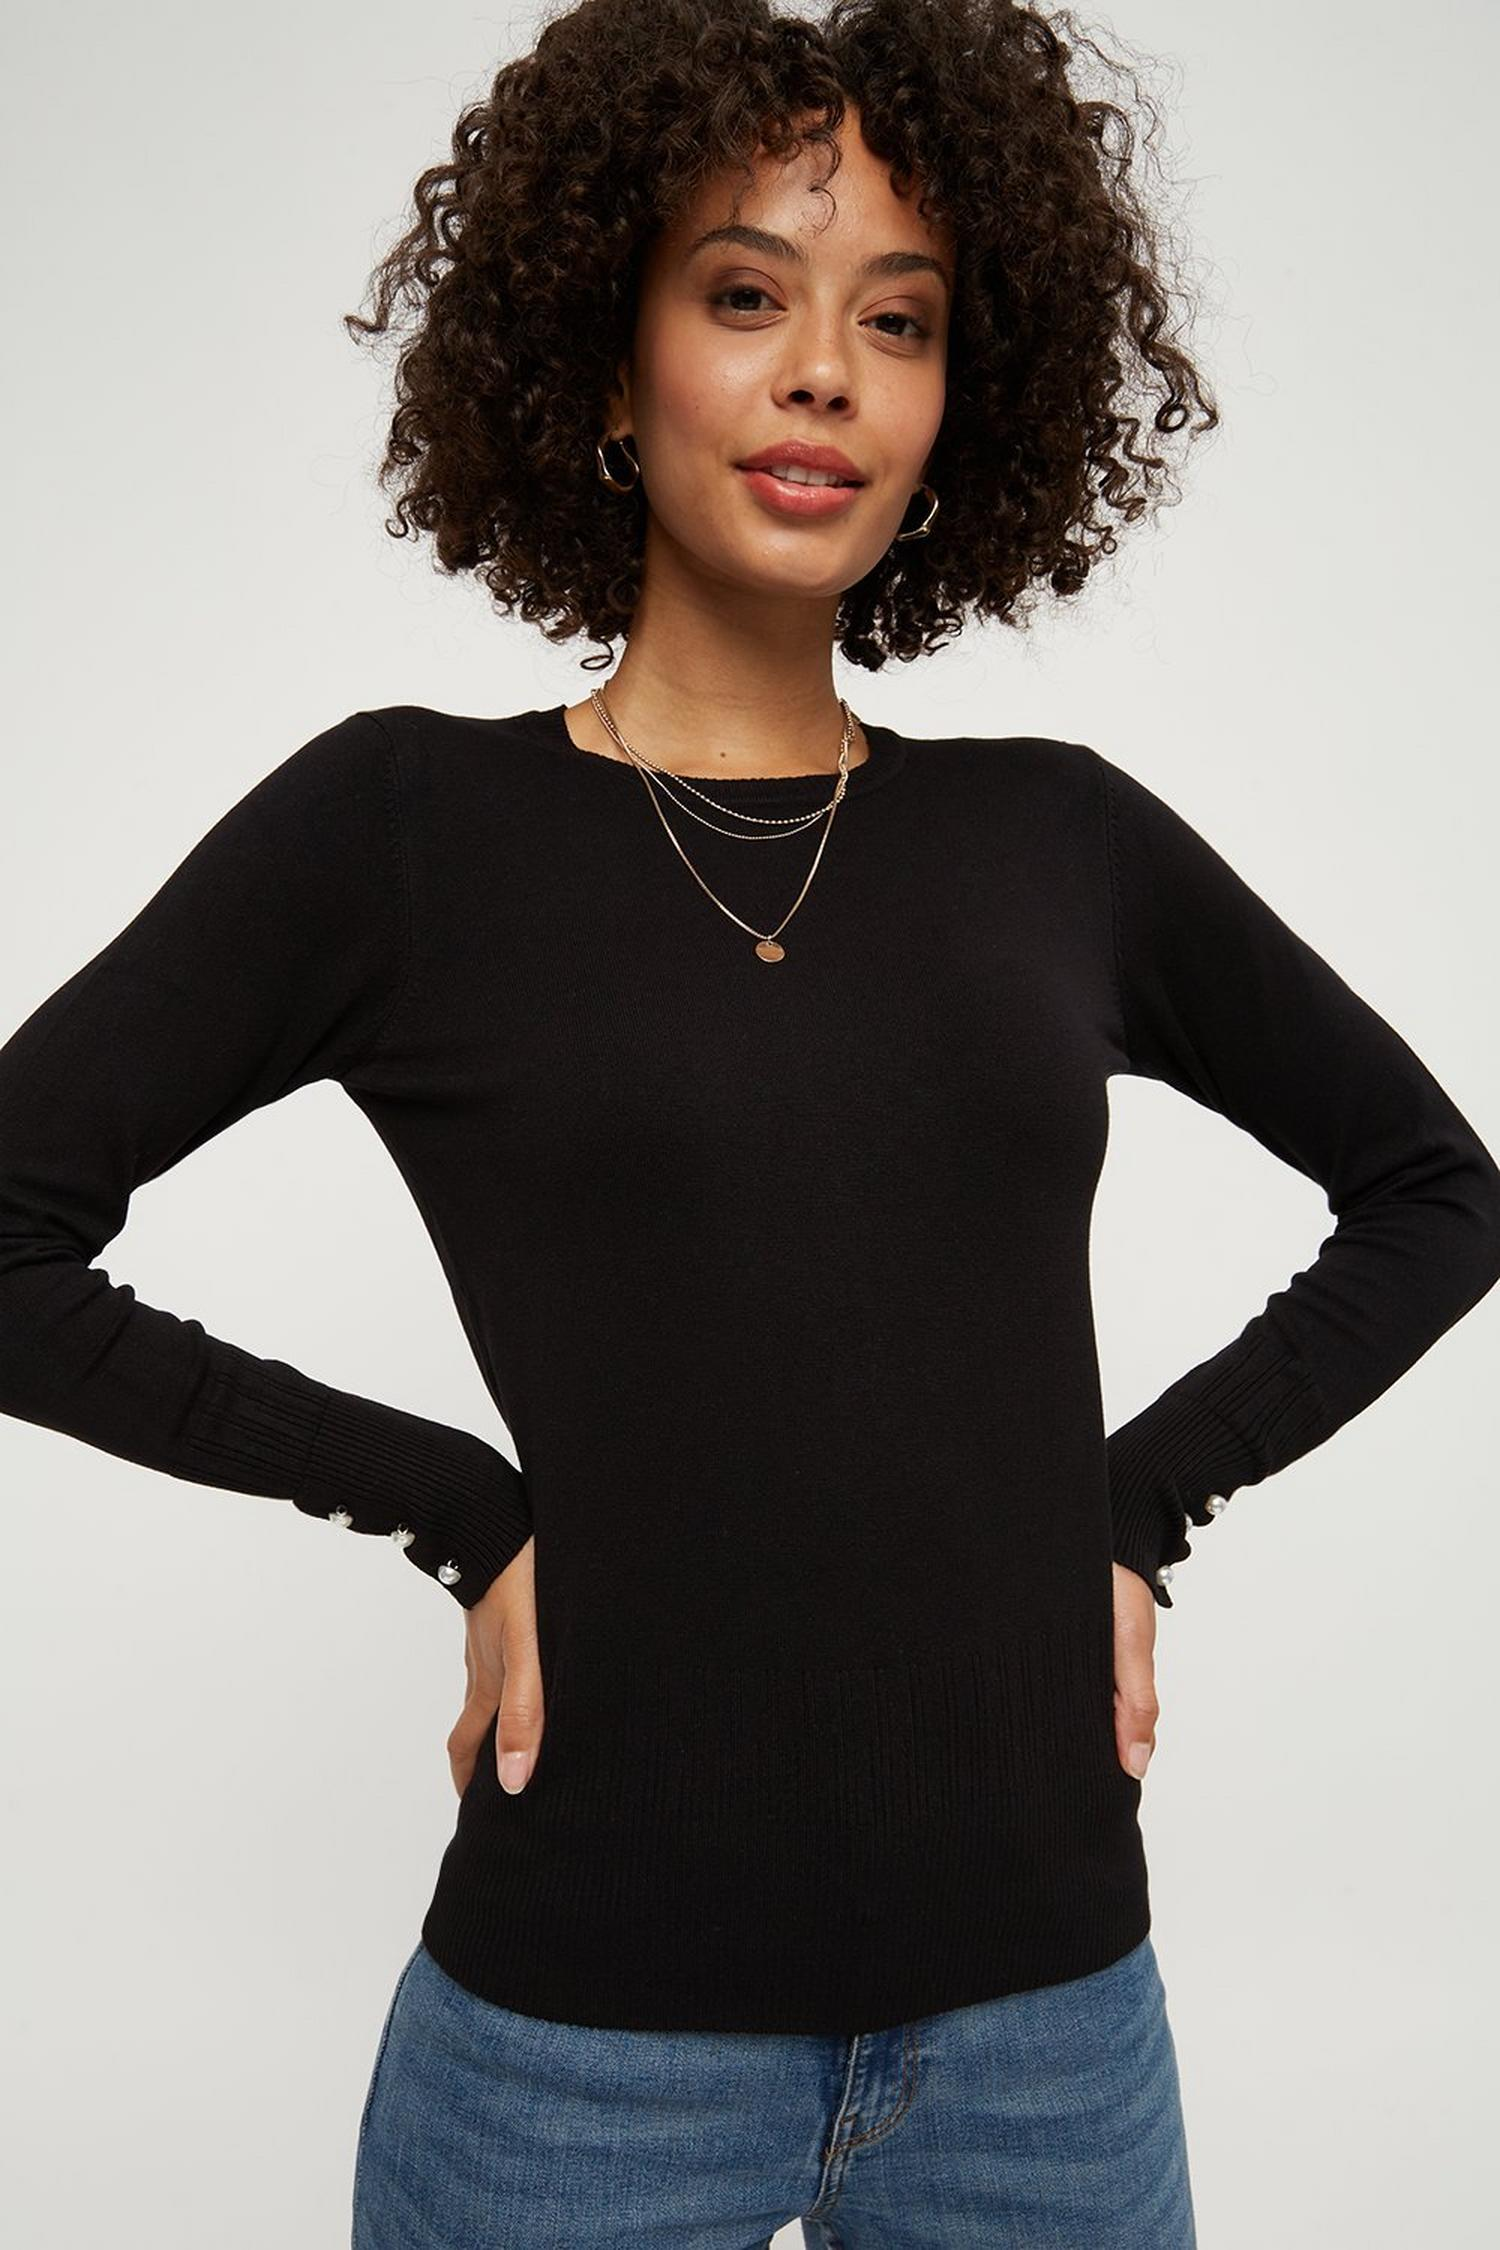 105 Black Pearl Cuff Crew Neck Jumper image number 4